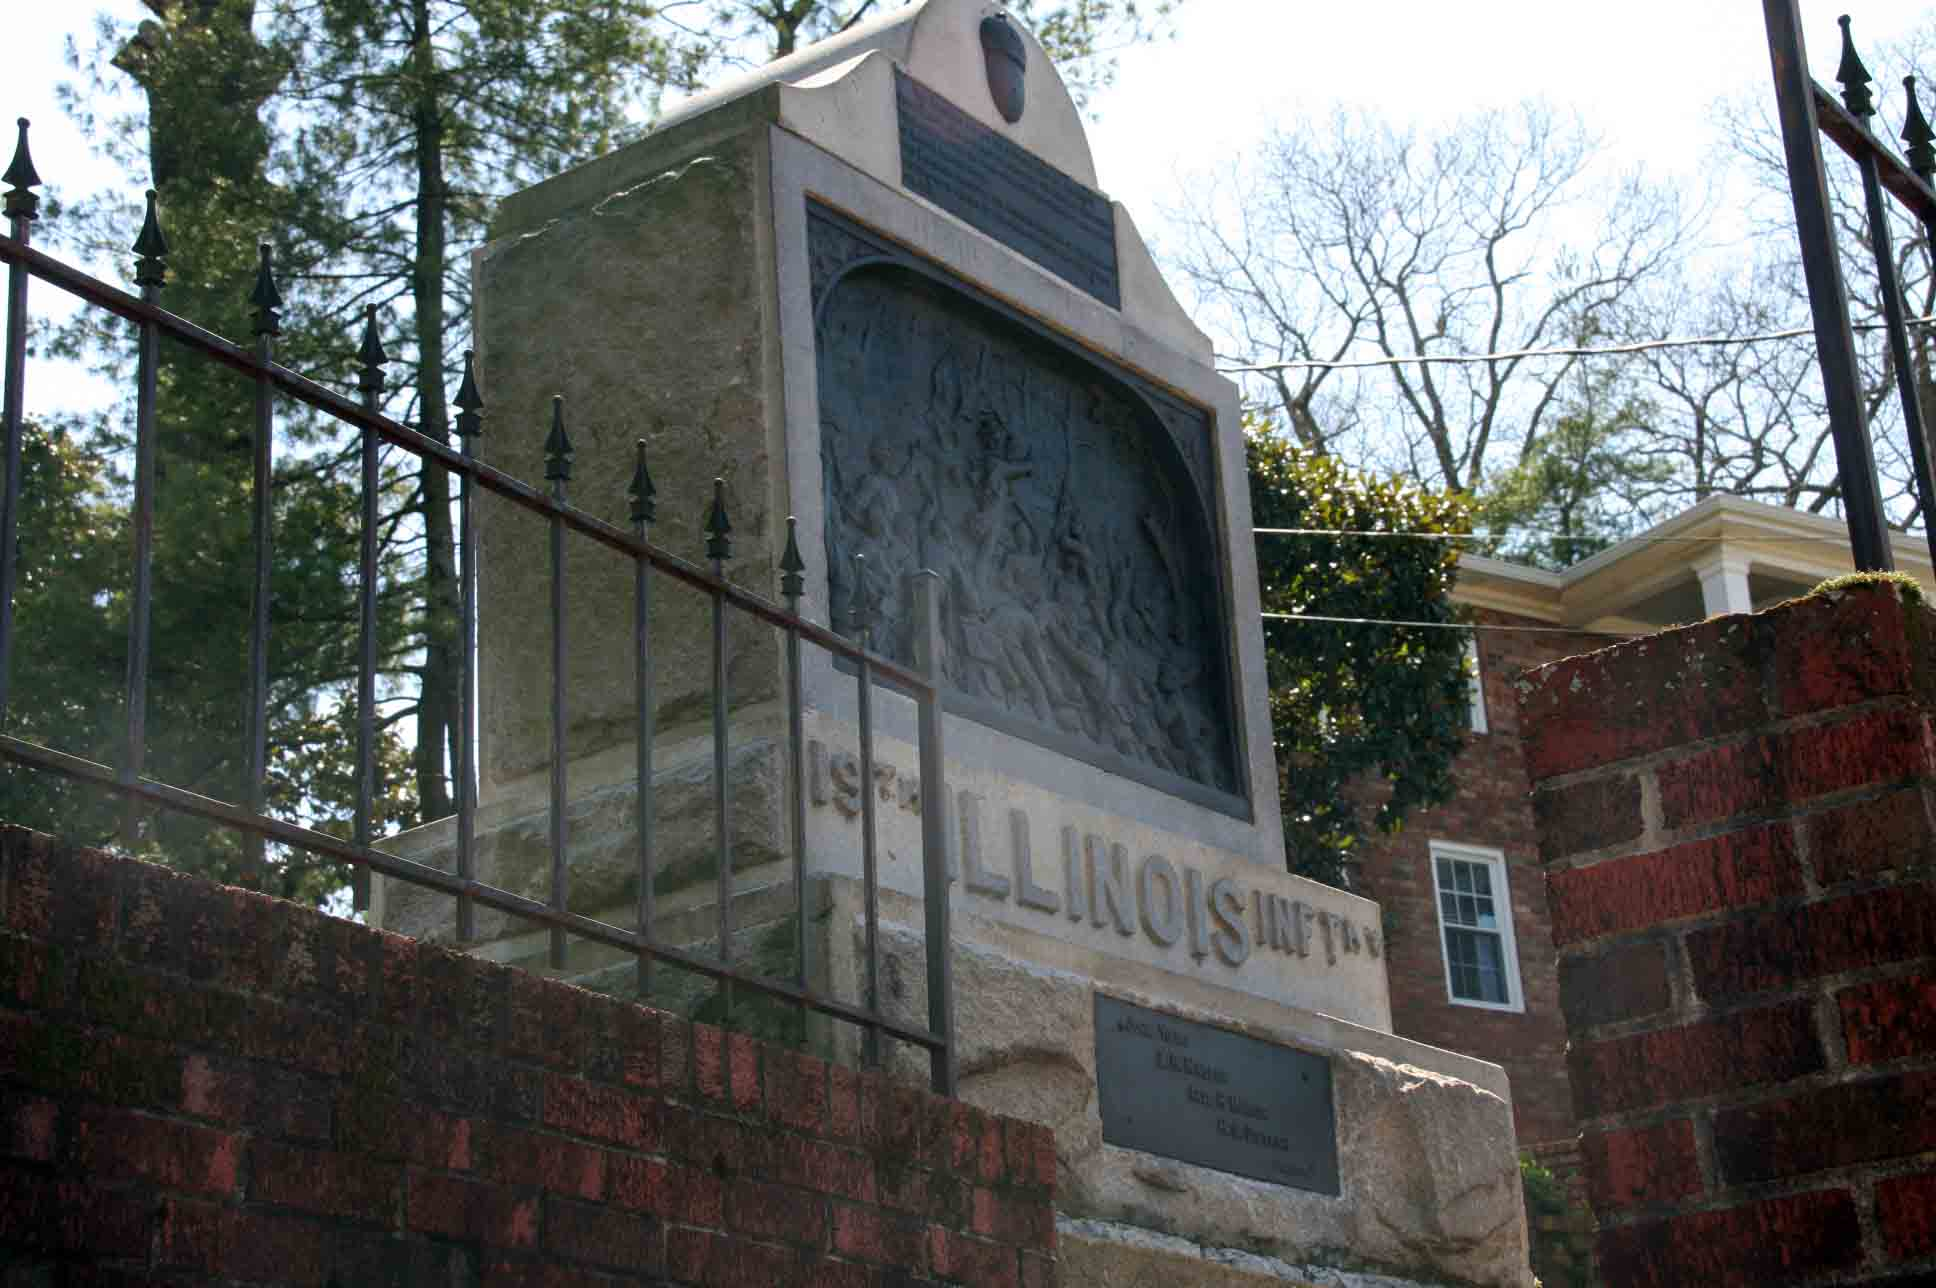 19th Illinois Infantry Monument, click photo to enlarge.